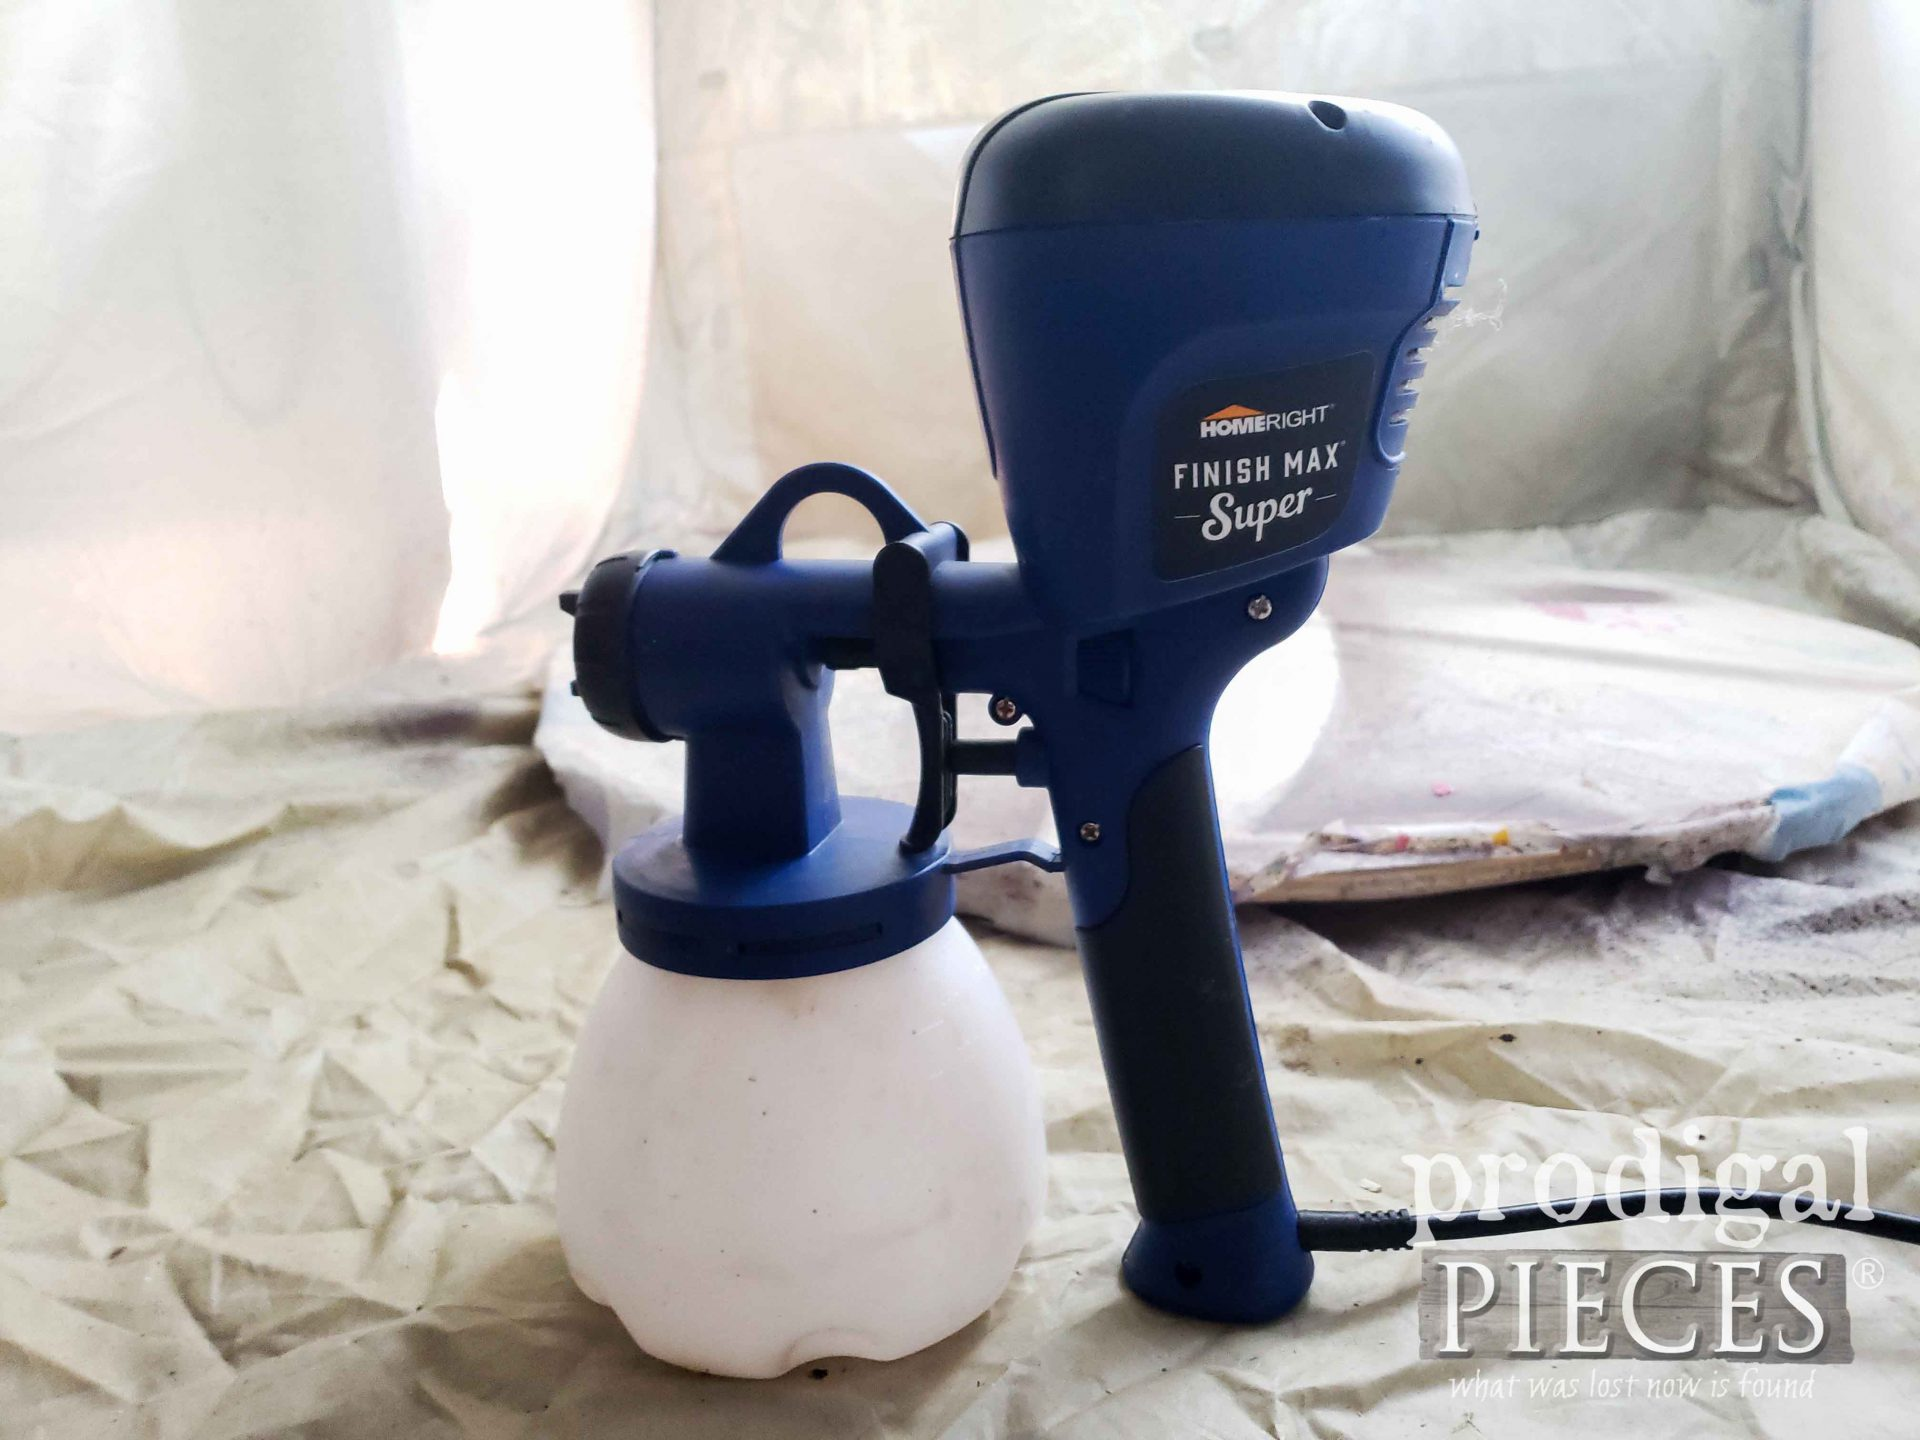 HomeRight Super Finish Max Extra Paint Sprayer | prodigalpieces.com